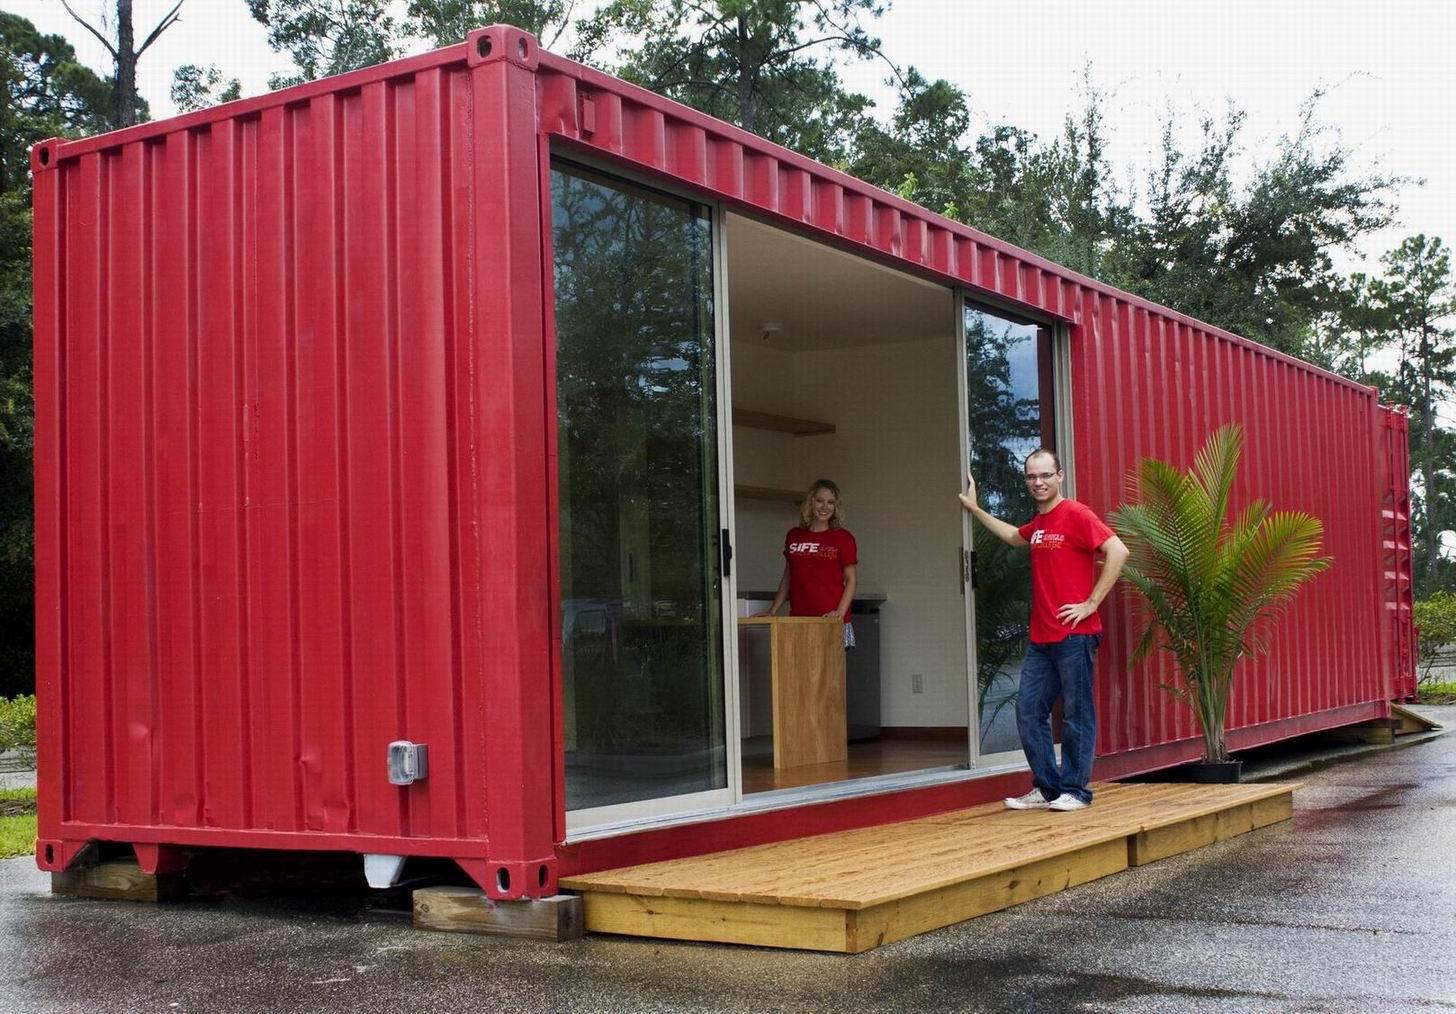 40 foot container homes quotes - Ft container home ...